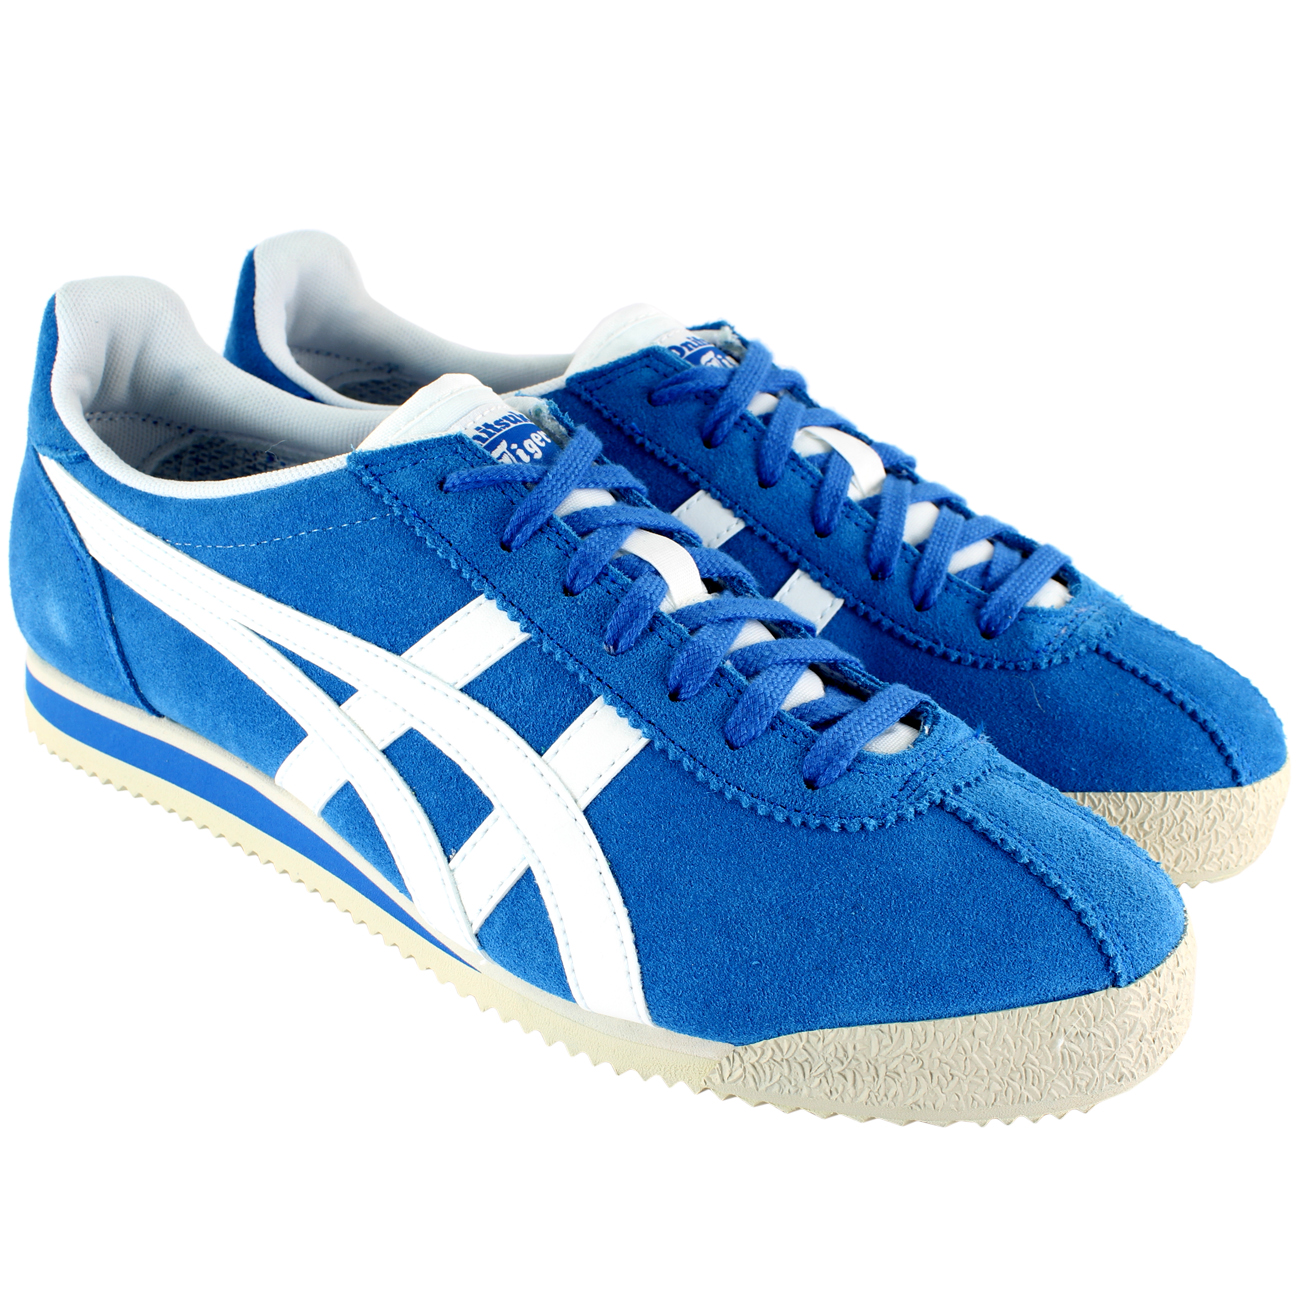 Onitsuka Tiger Tiger Corsair Trainers